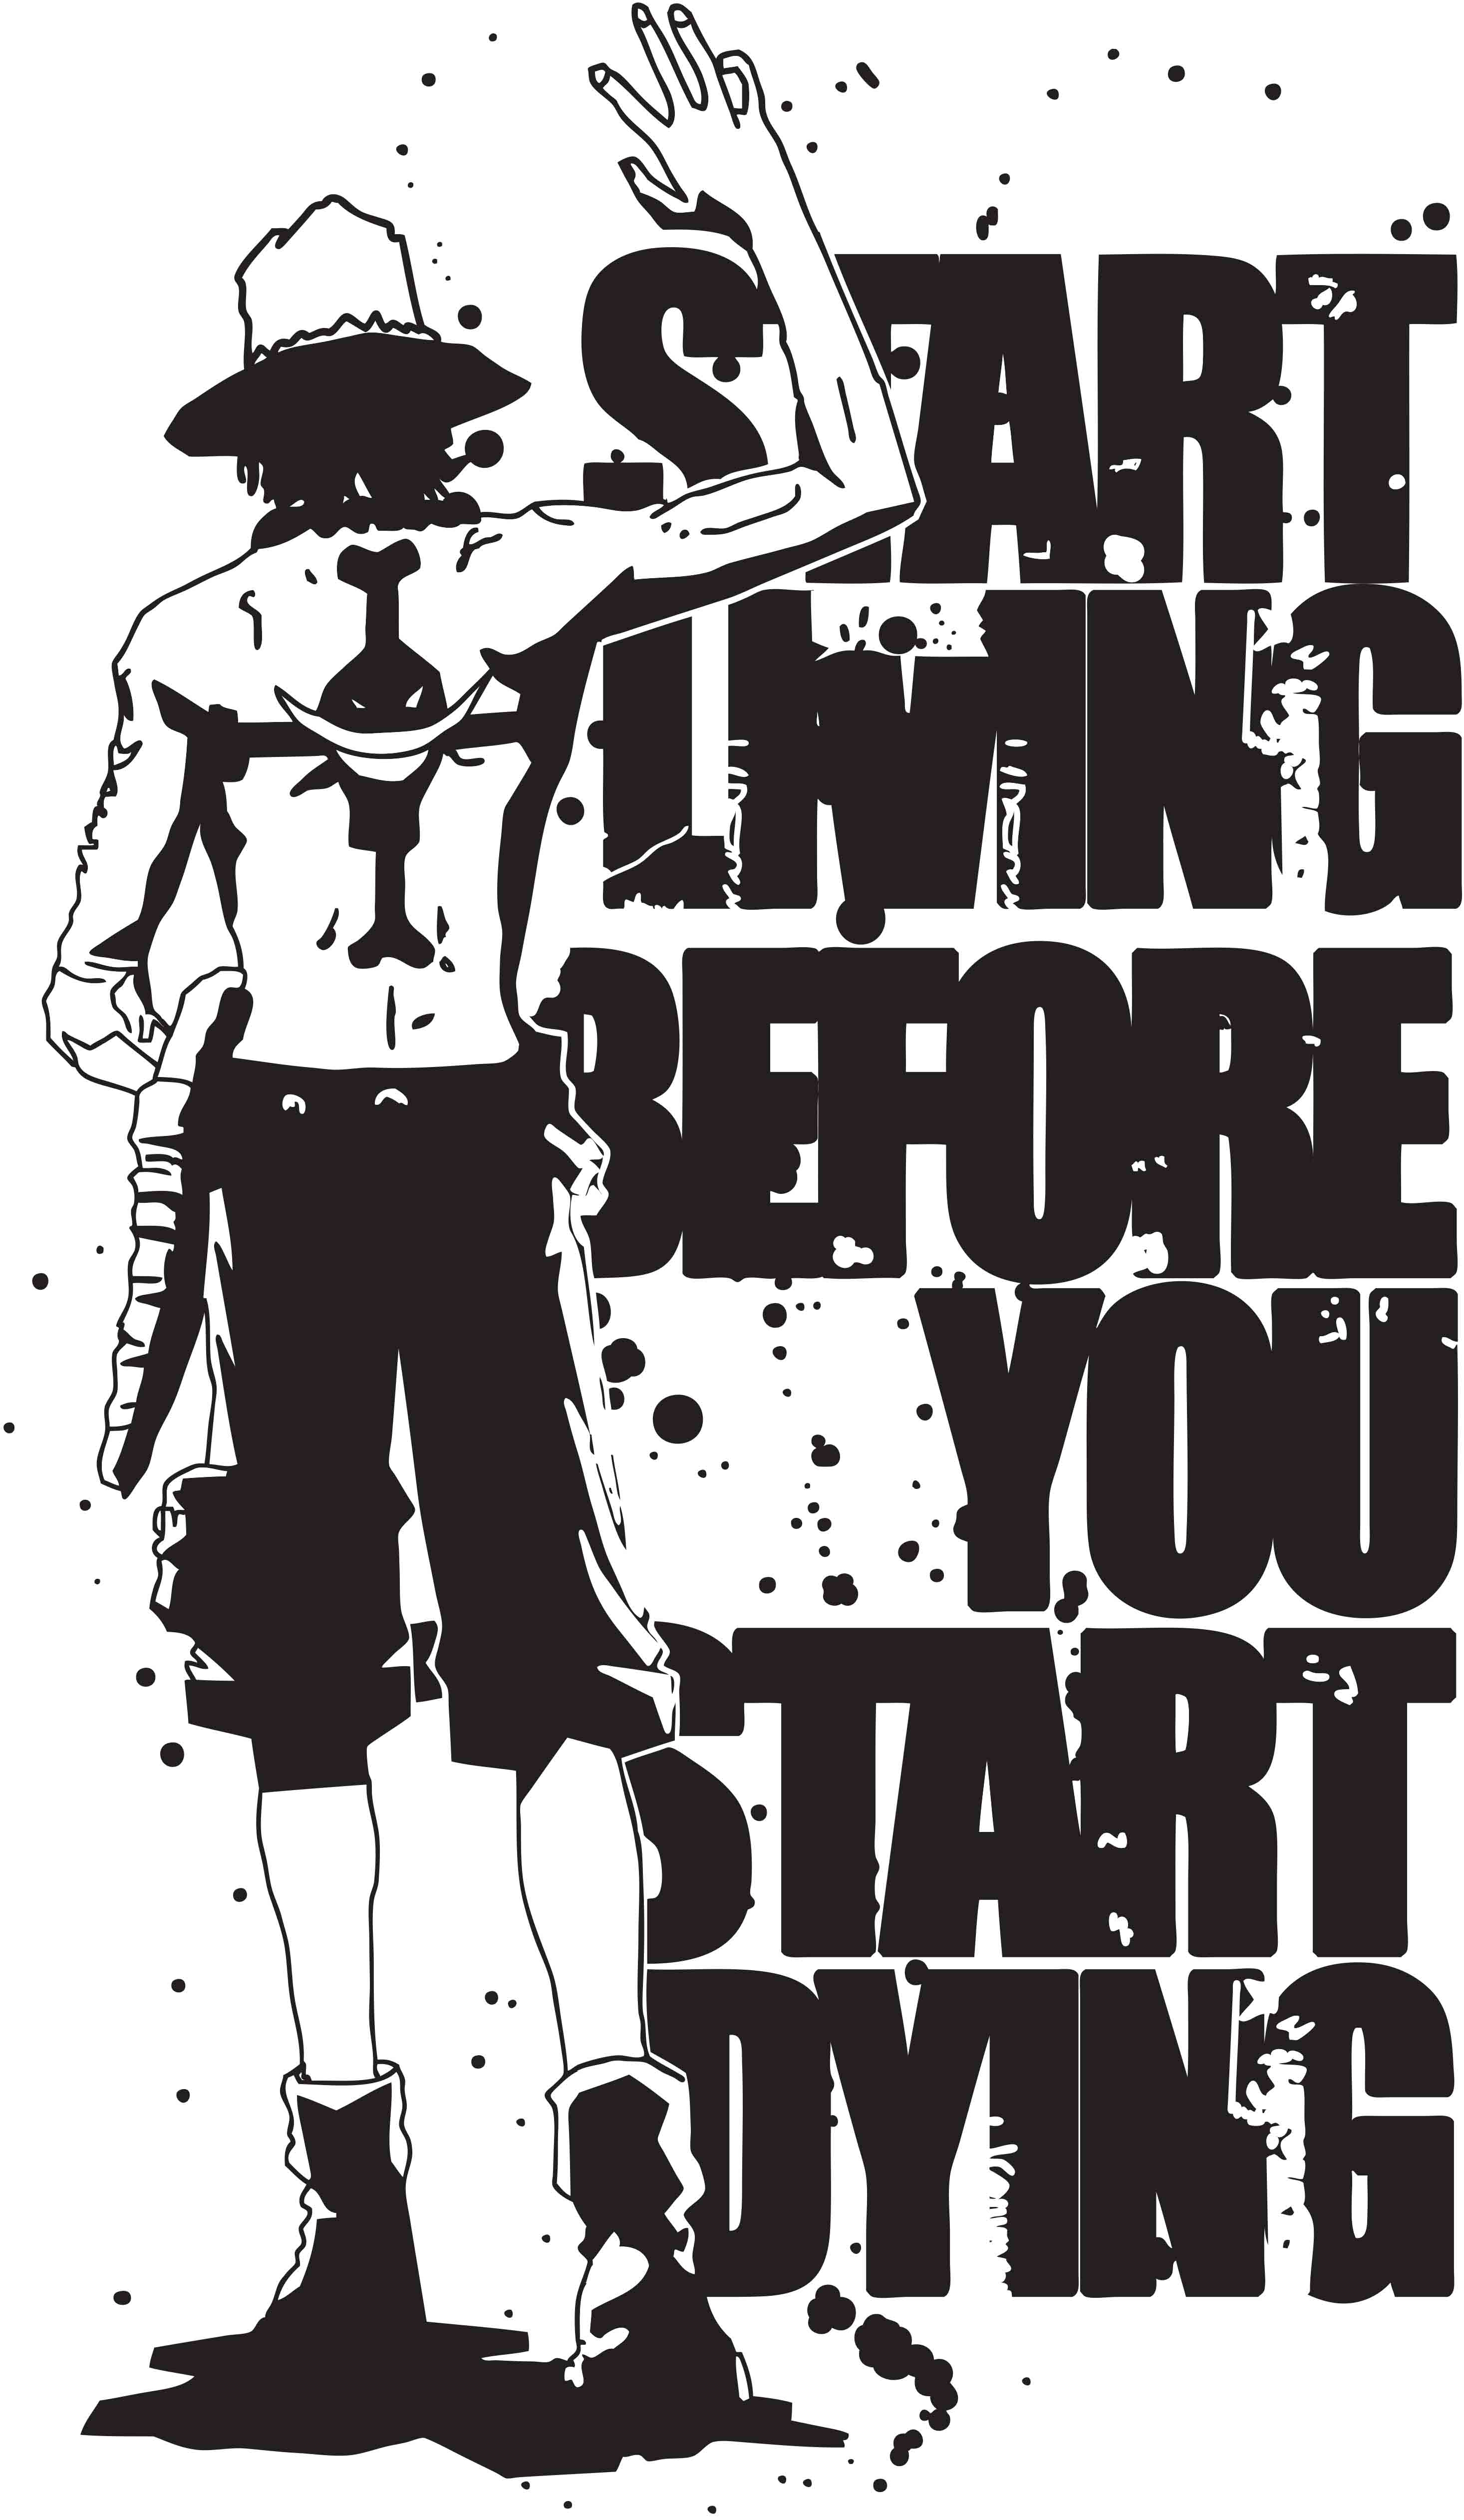 One Piece Quotes By Froztlegend On Deviantart